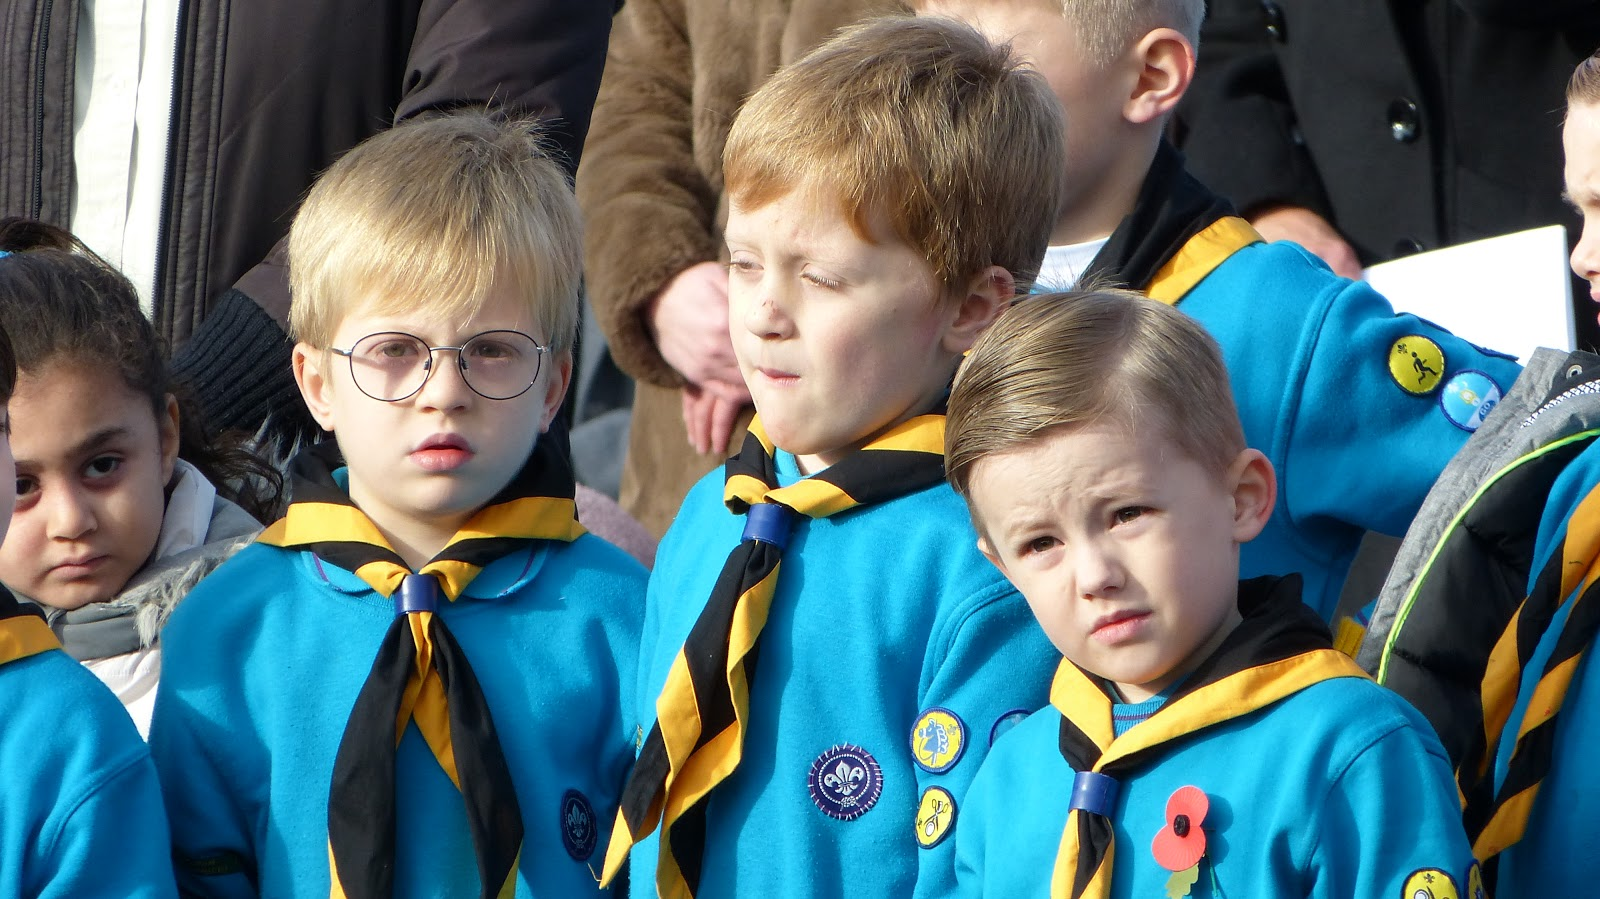 Beavers Remembrance parade 2019 in Castle Bromwich